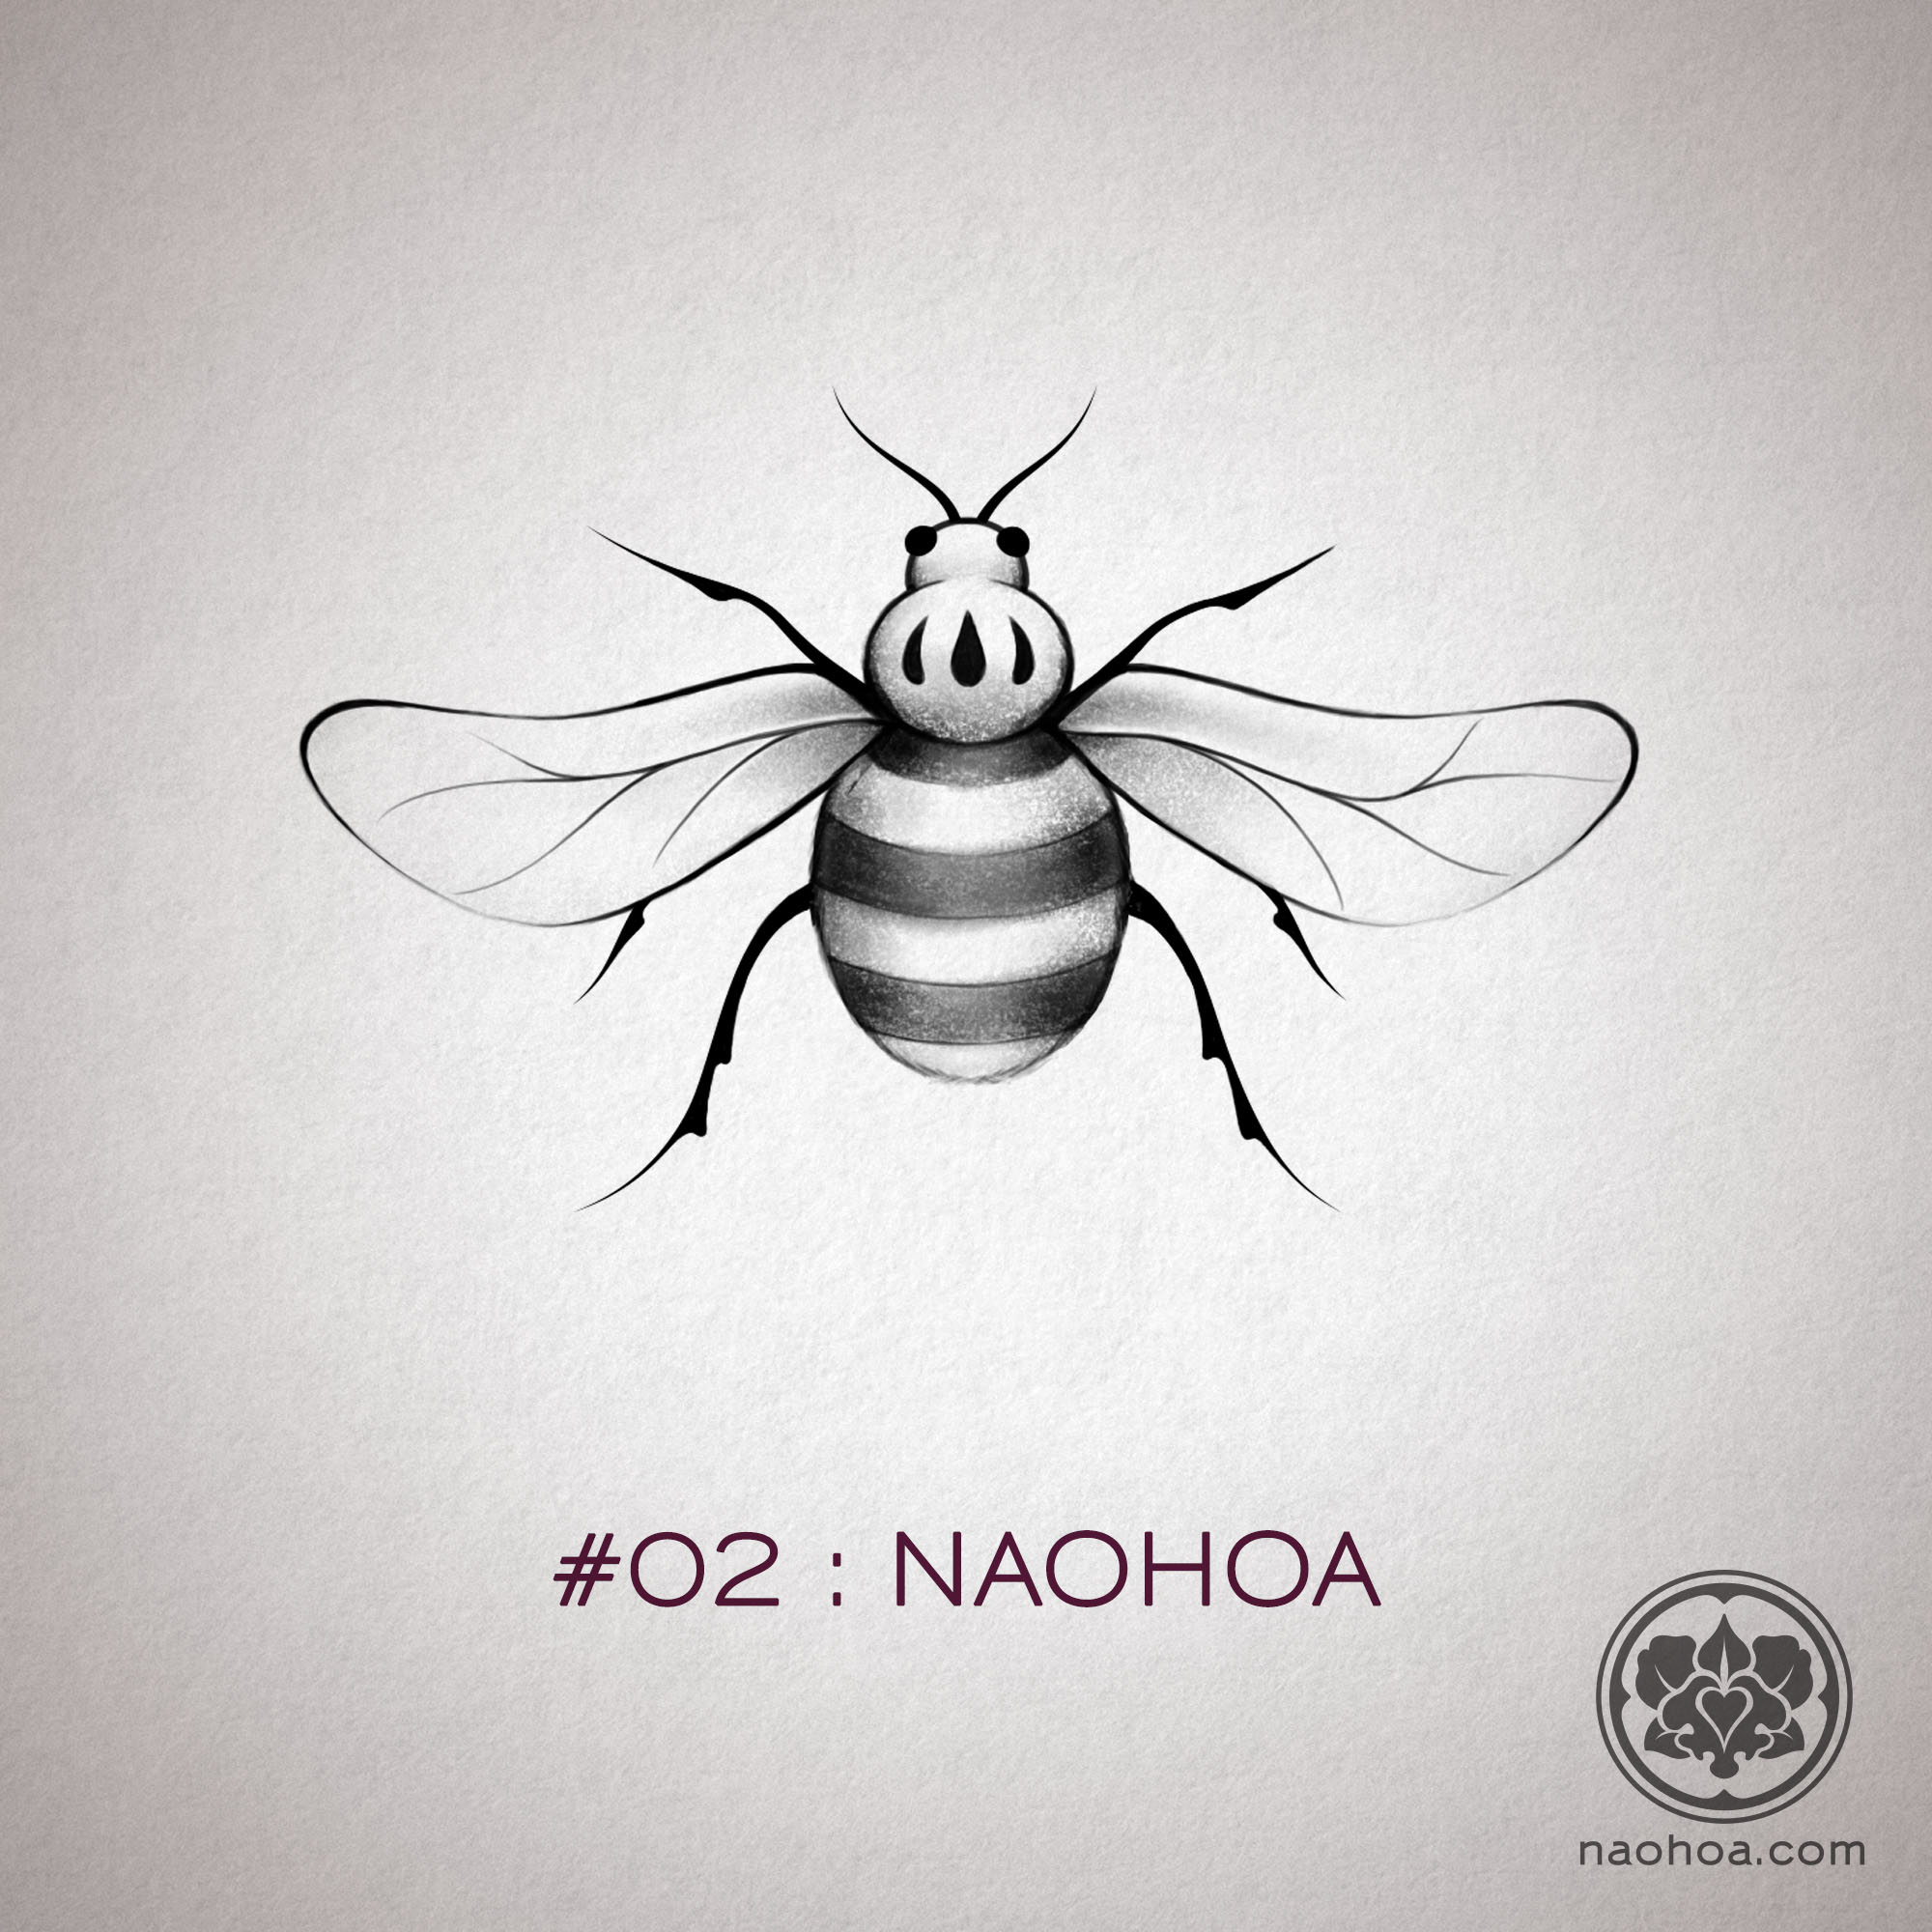 Manchester bee alternative design by Naomi Hoang, available as a temporary tattoo to raise funds for families affected by the Manchester Arena Attack in May 2017.